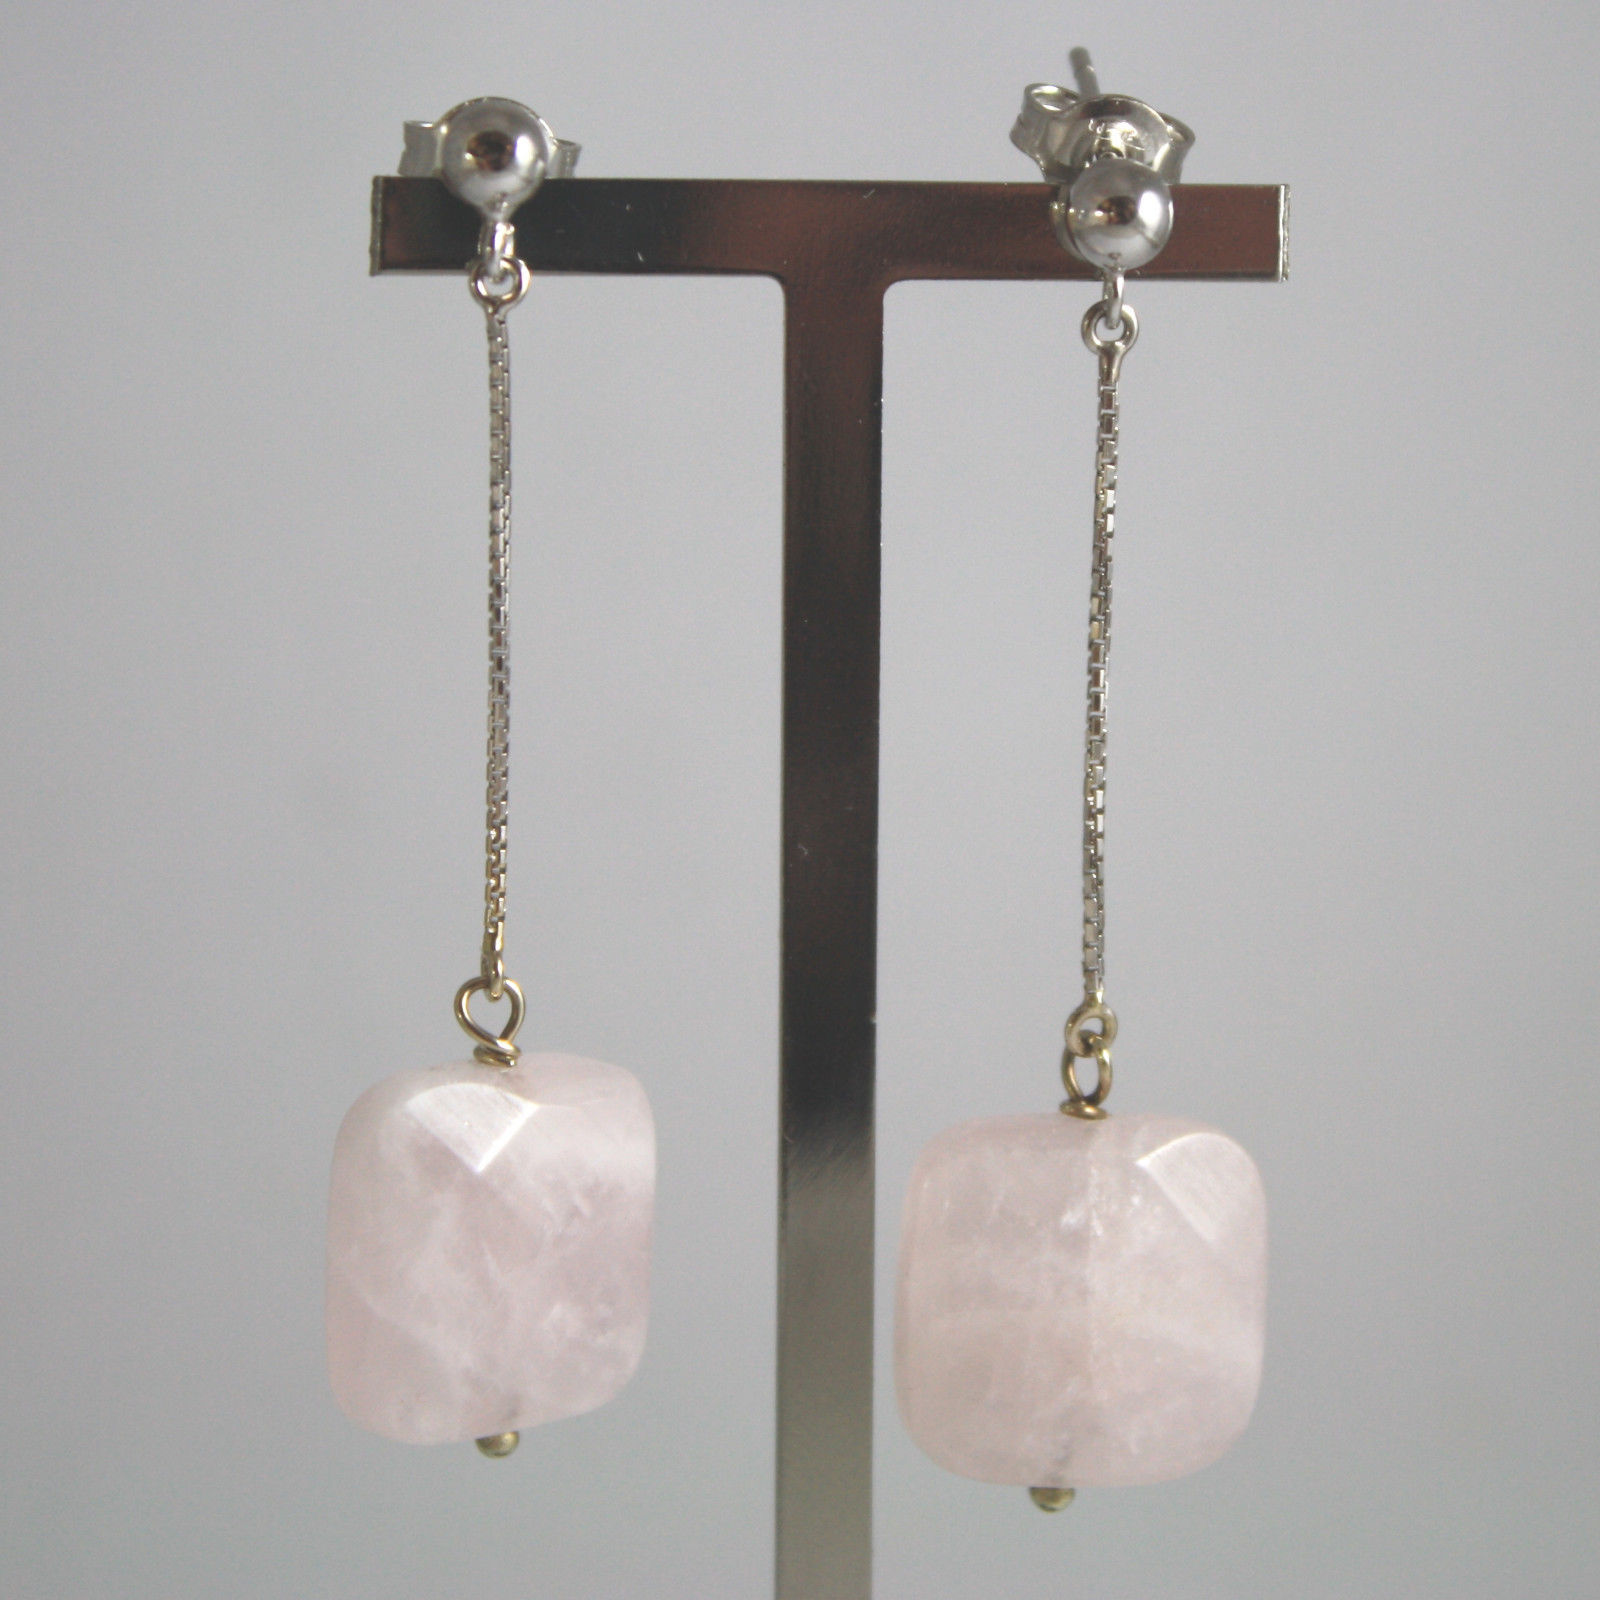 SOLID 18K WHITE GOLD EARRINGS, WITH SQUARE PINK QUARTZ, LENGTH 2.13 INCHES